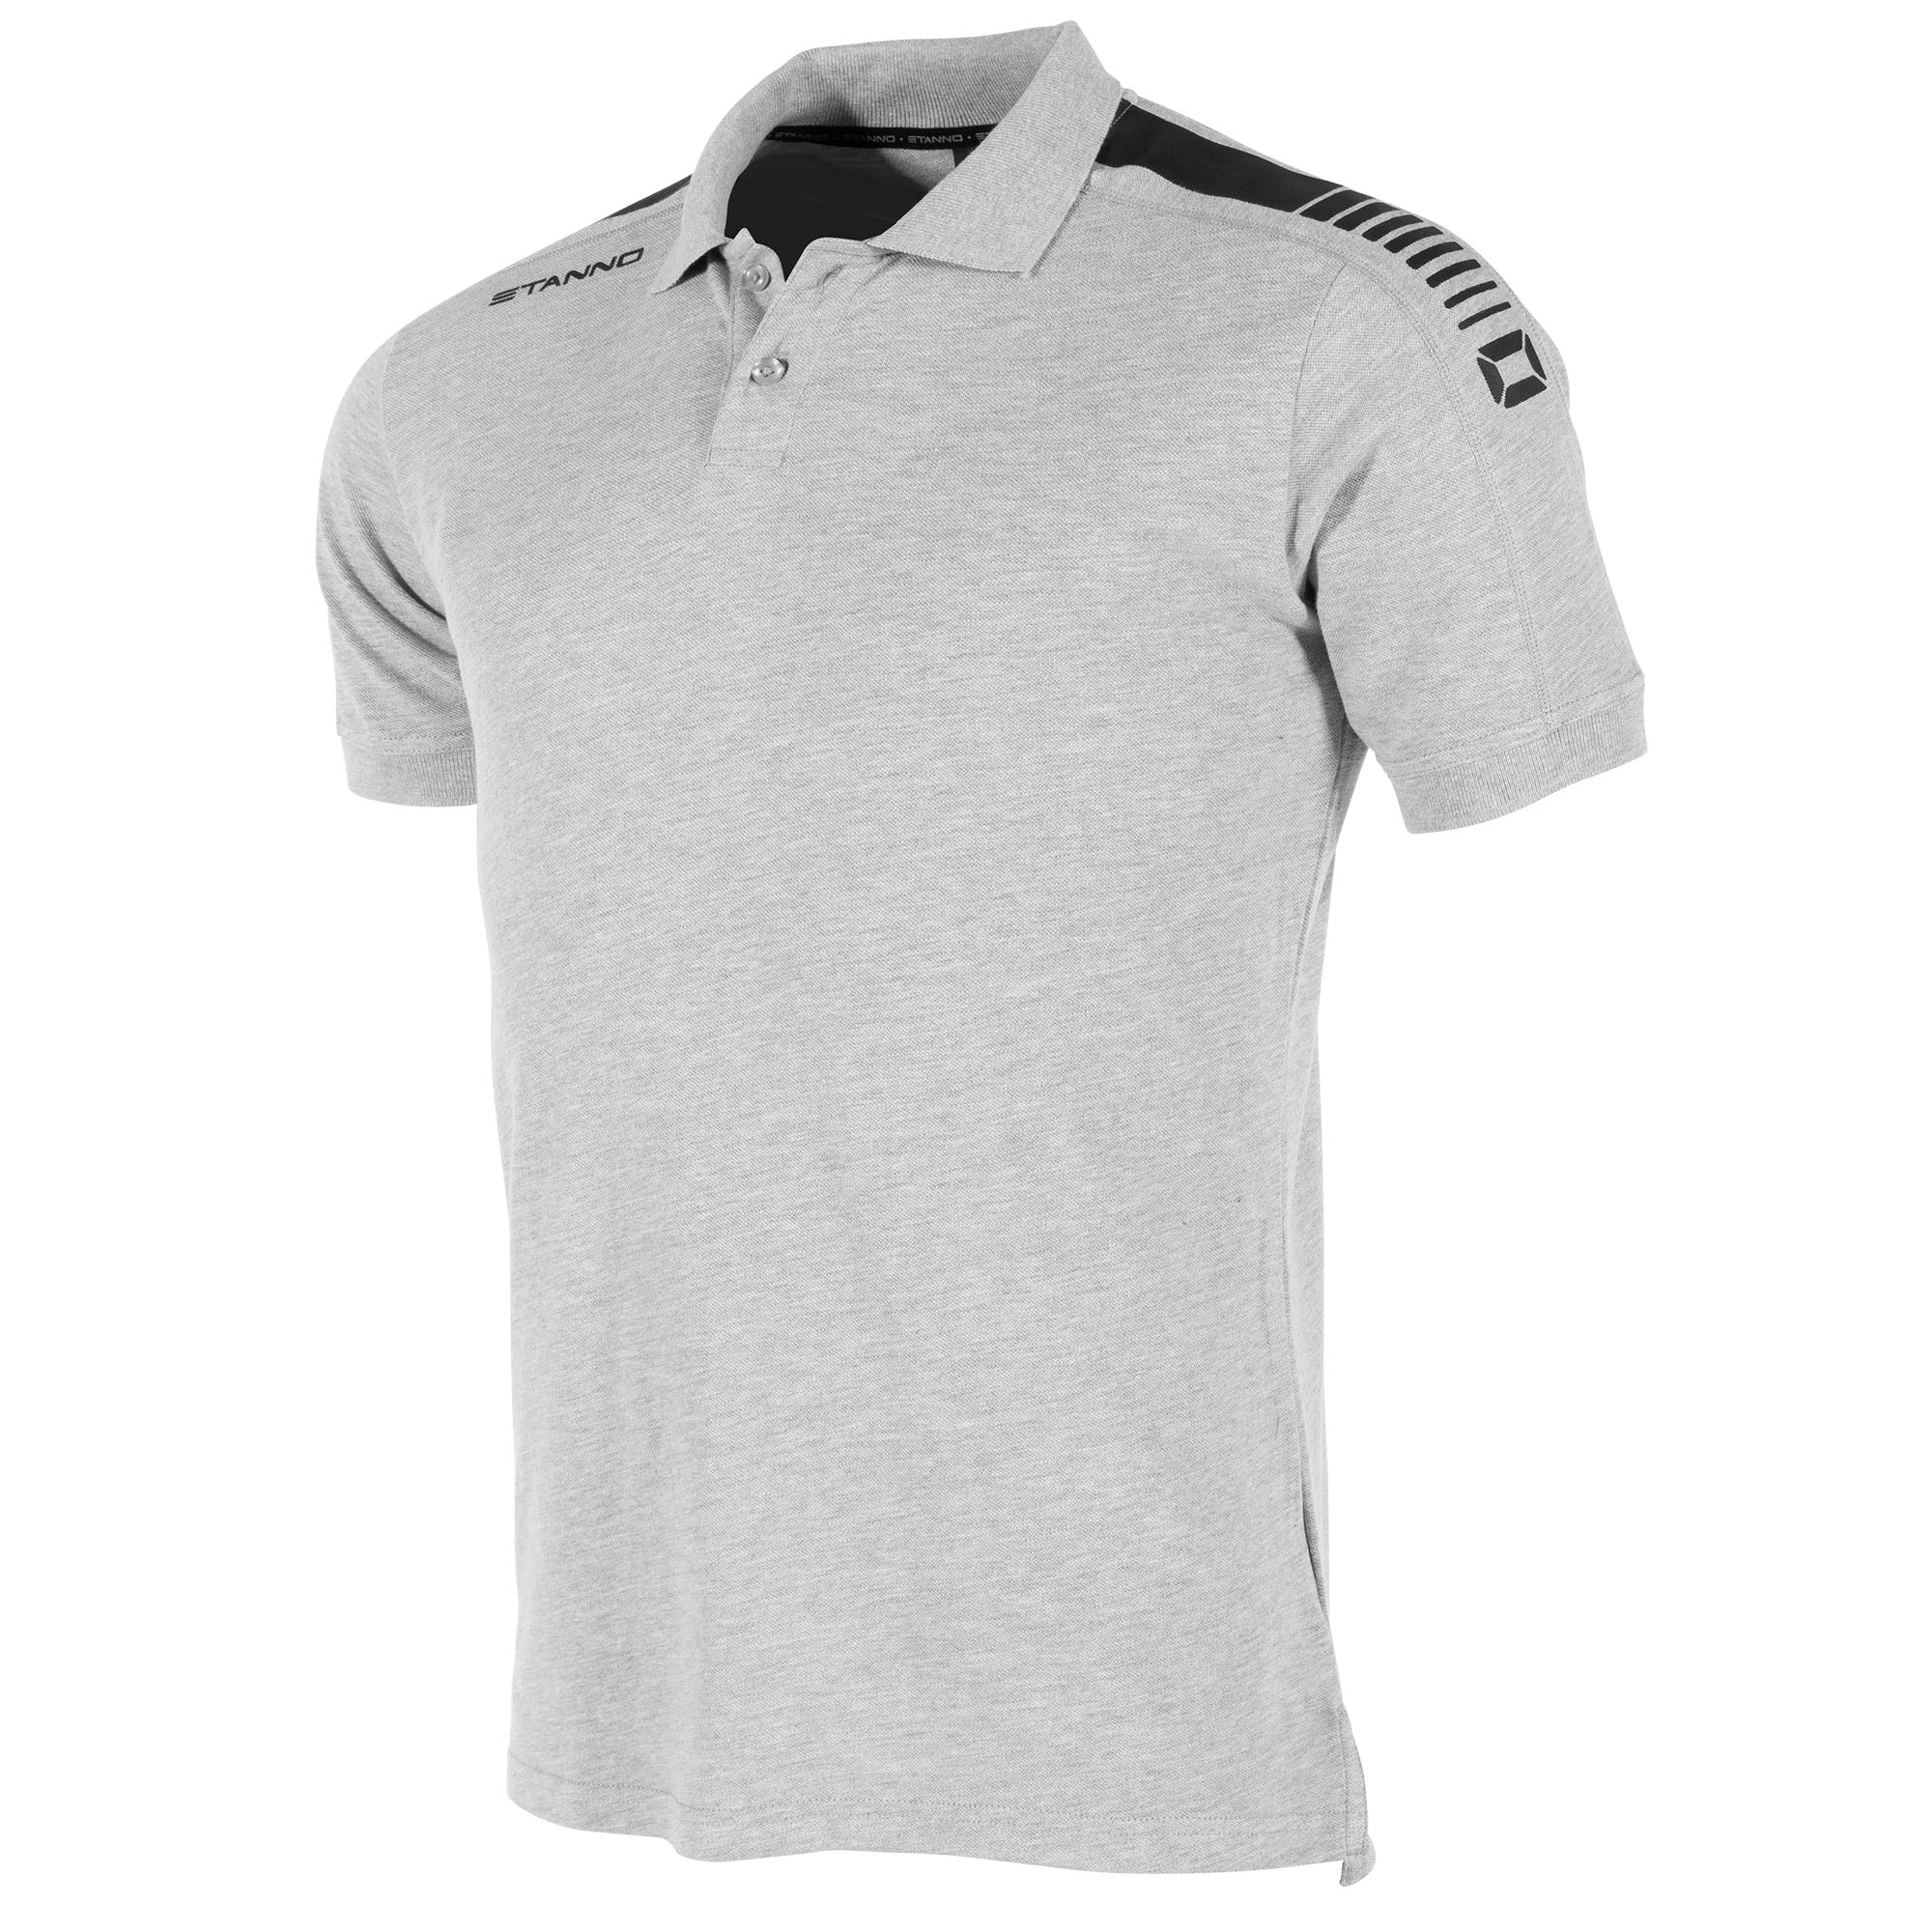 front view of a grey Stanno Ease Polo. 2 buttons, and black print design on the shoulders.